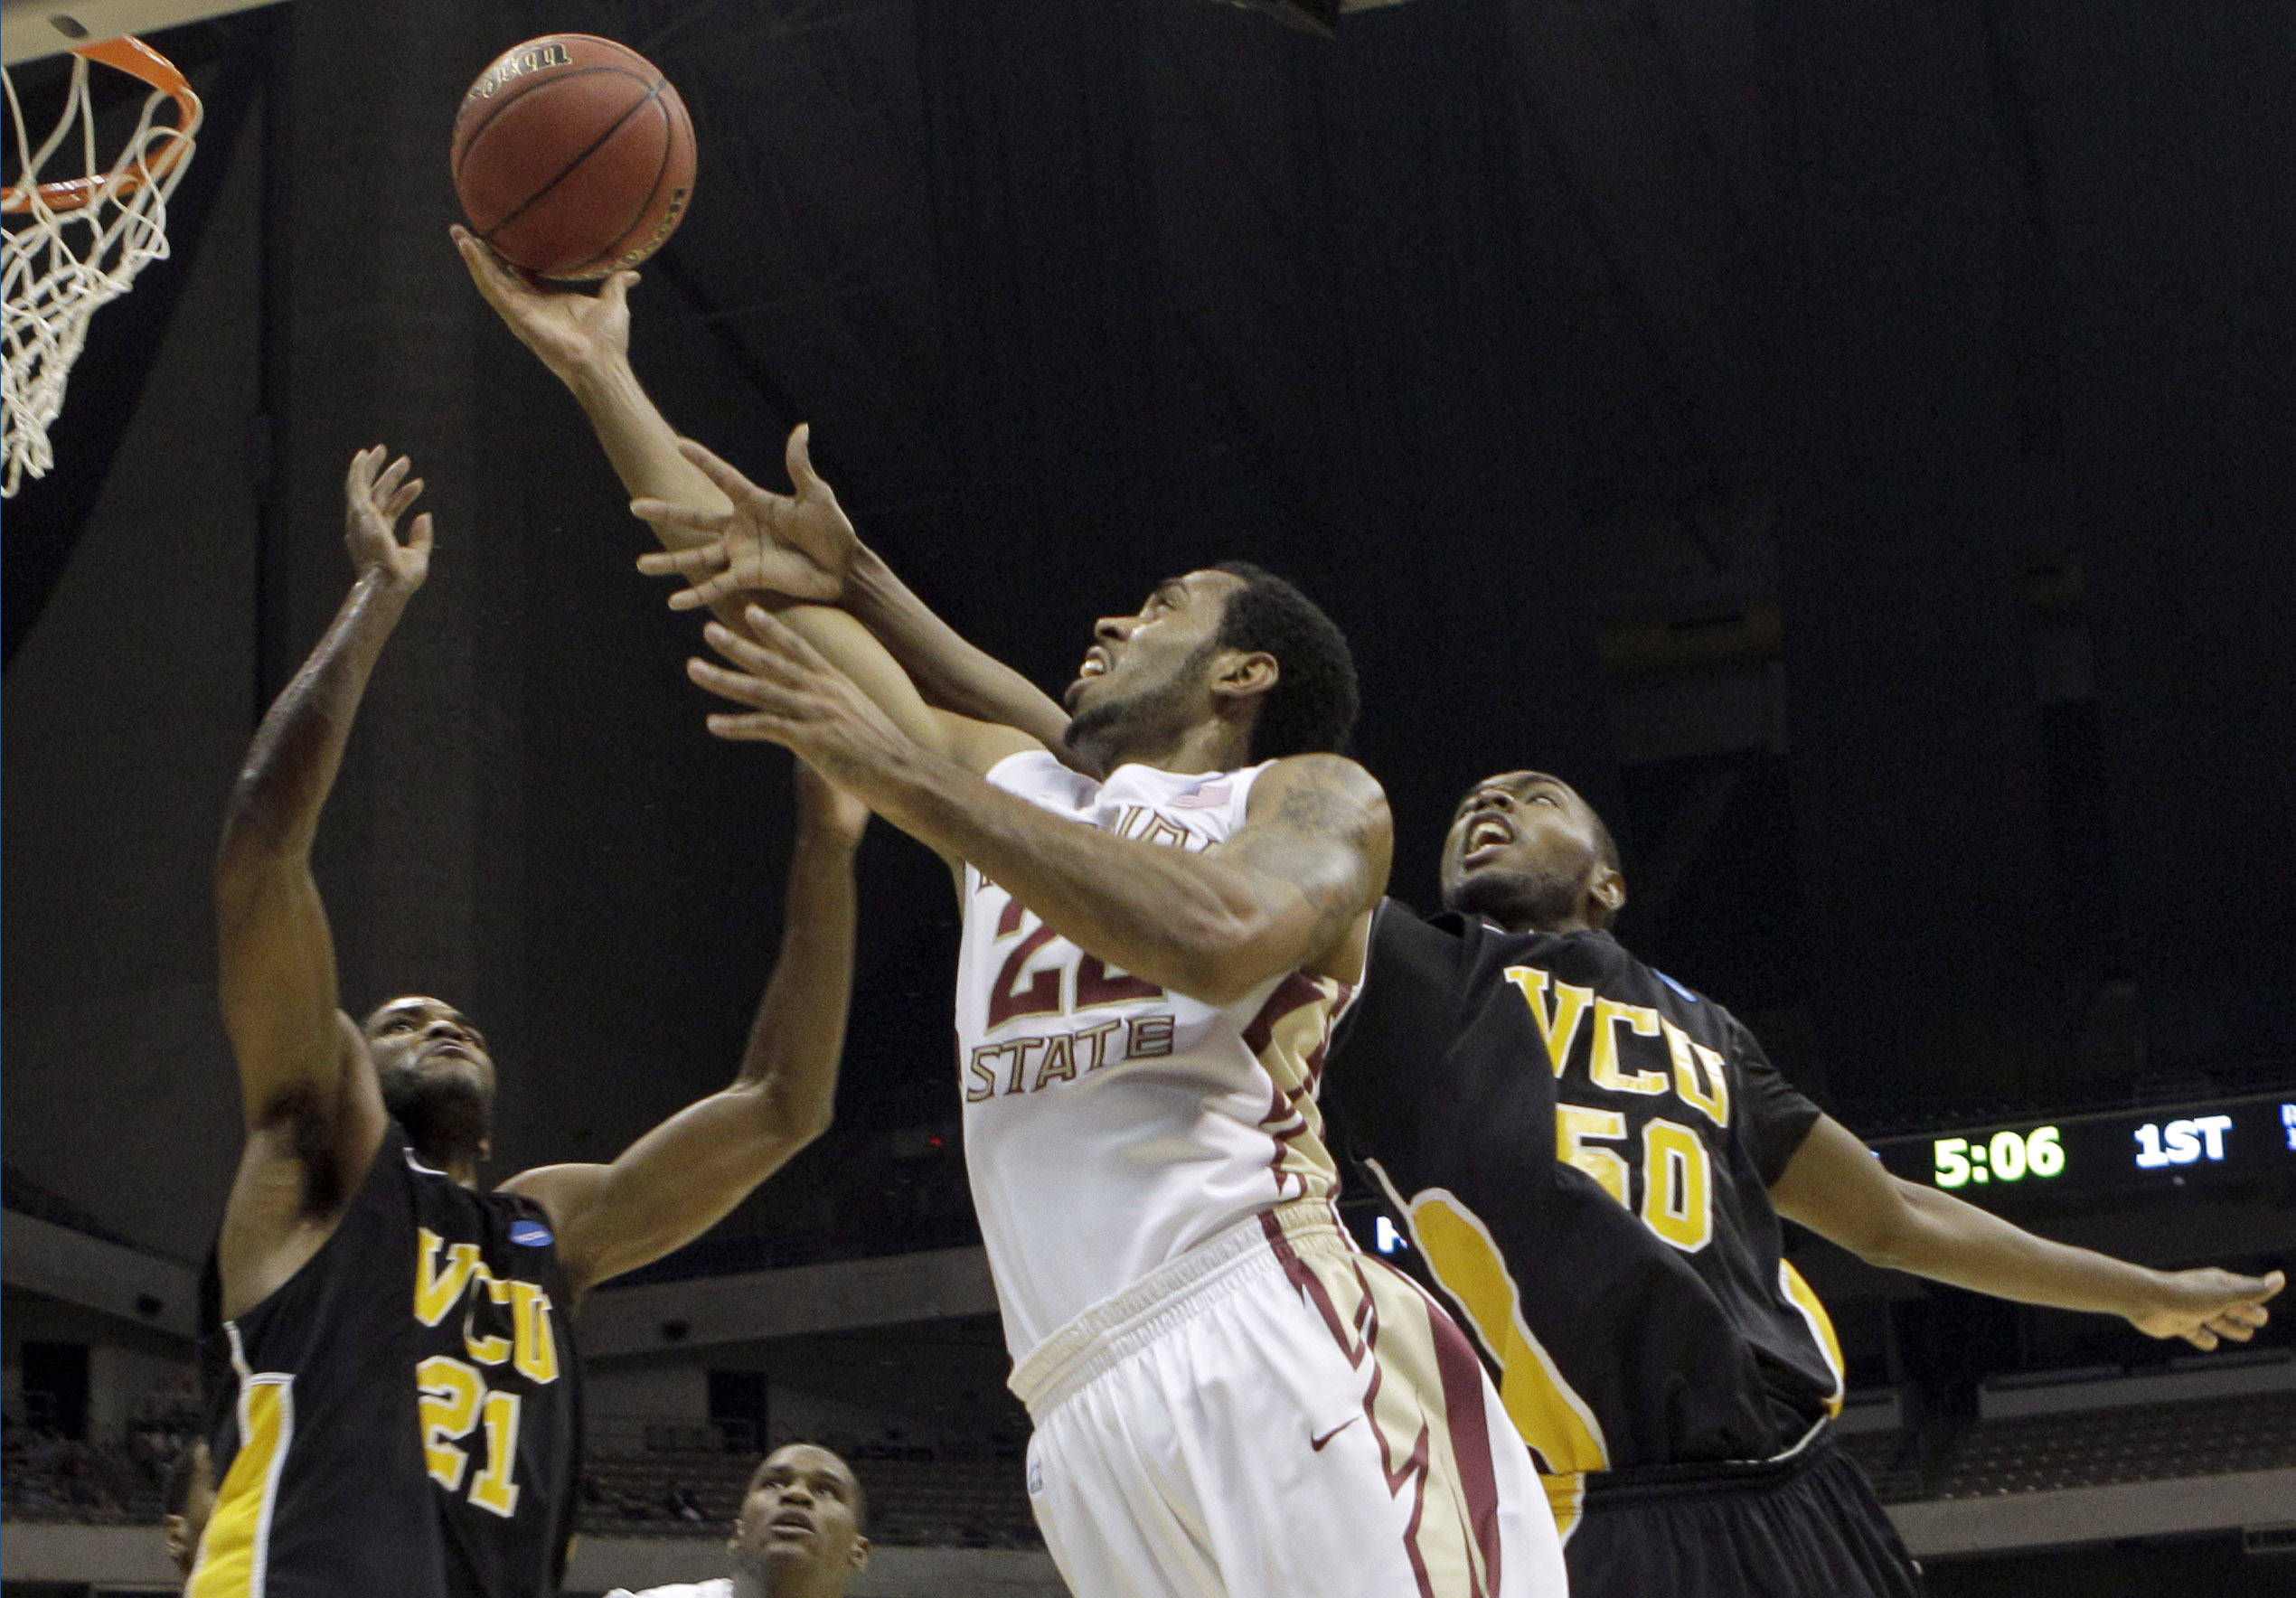 Florida State's Derwin Kitchen shoots as Virginia Commonwealth's Jamie Skeen, left, and Ed Nixon defend during the first half. (AP Photo/Tony Gutierrez)